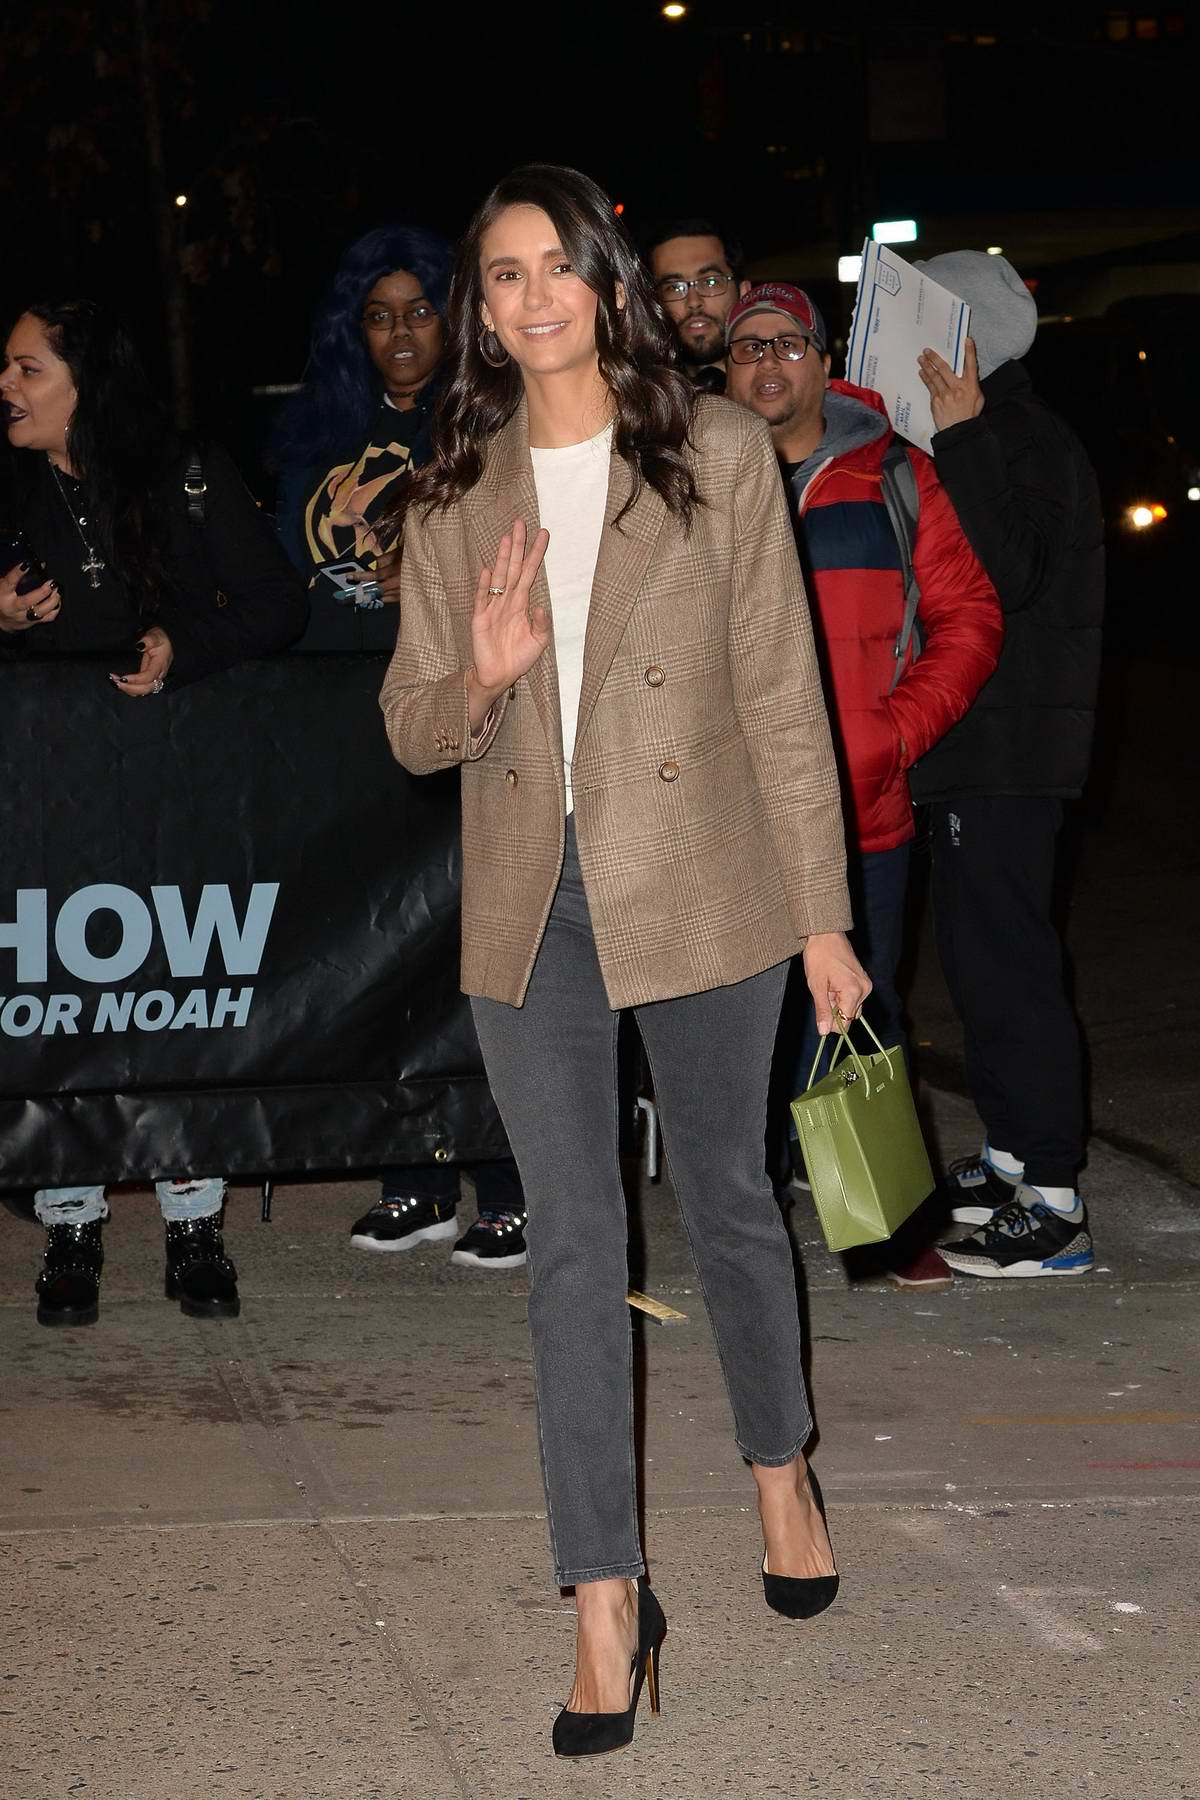 Nina Dobrev waves for the camera as she arrives at 'The Daily Show' with Trevor Noah in New York City